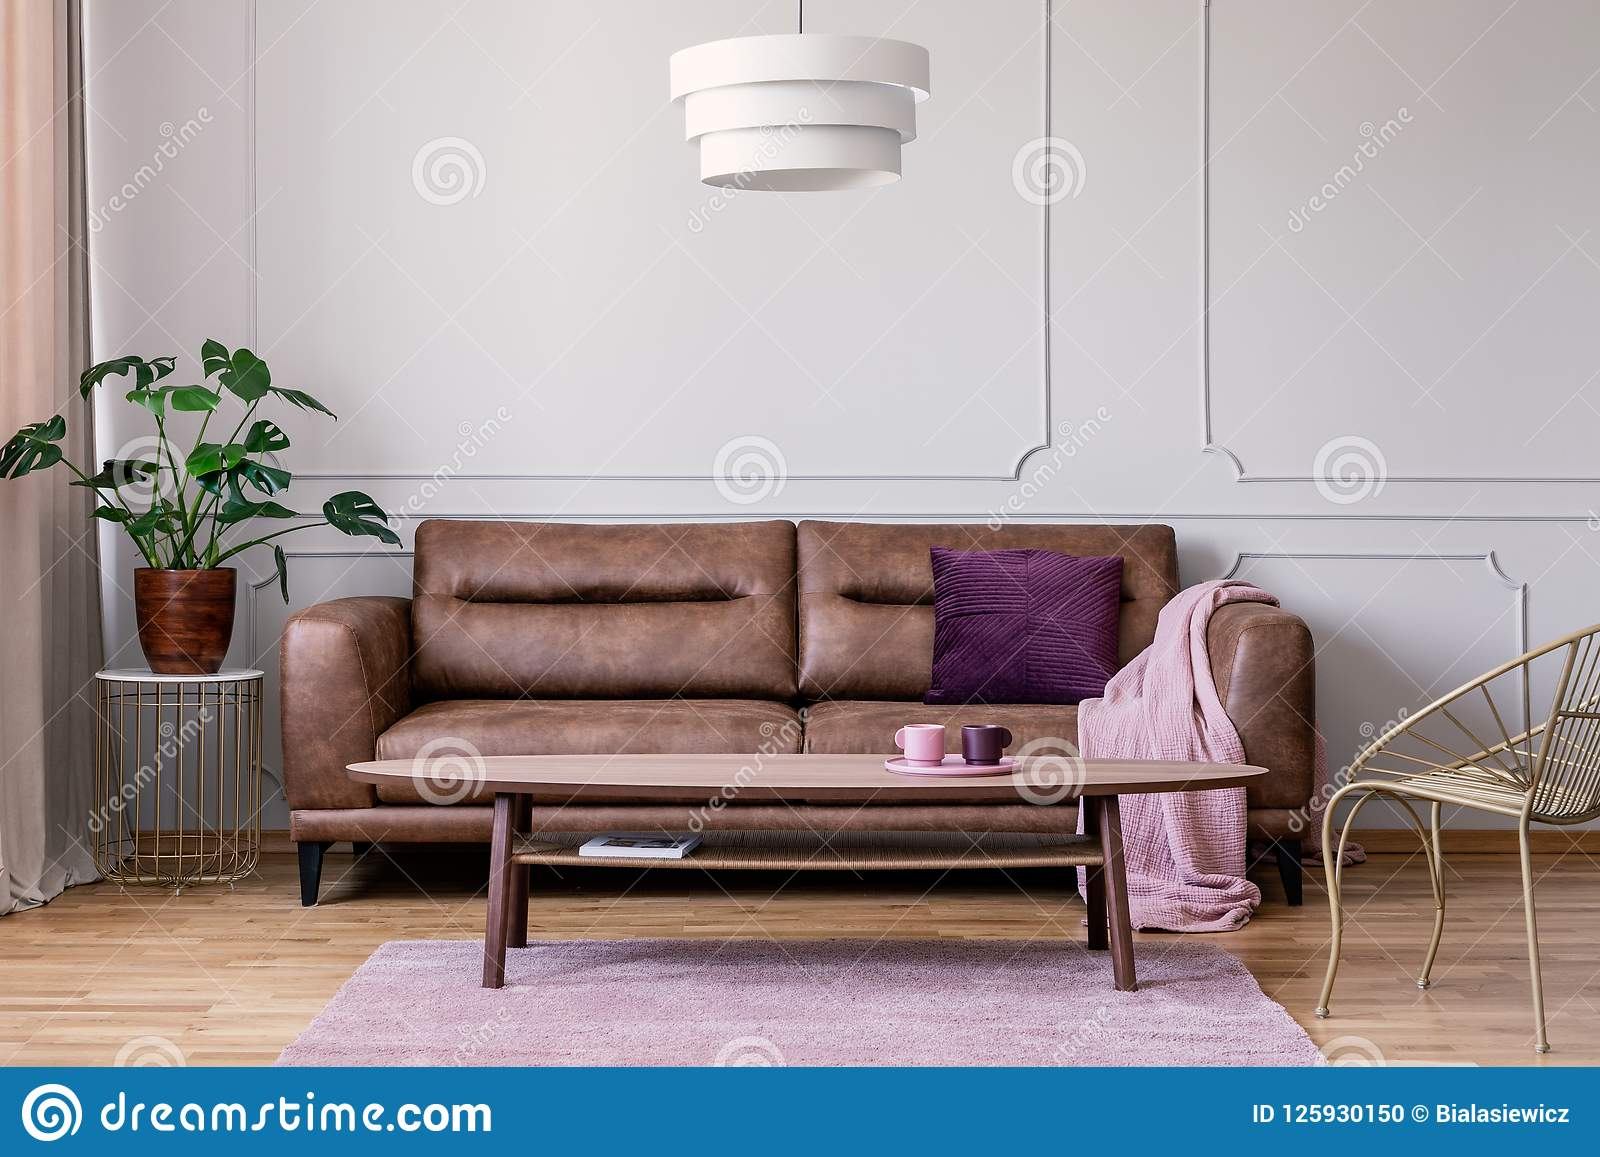 Real photo of brown leather sofa with violet cushion and pastel pink blanket standing in light grey sitting room interior with Mon